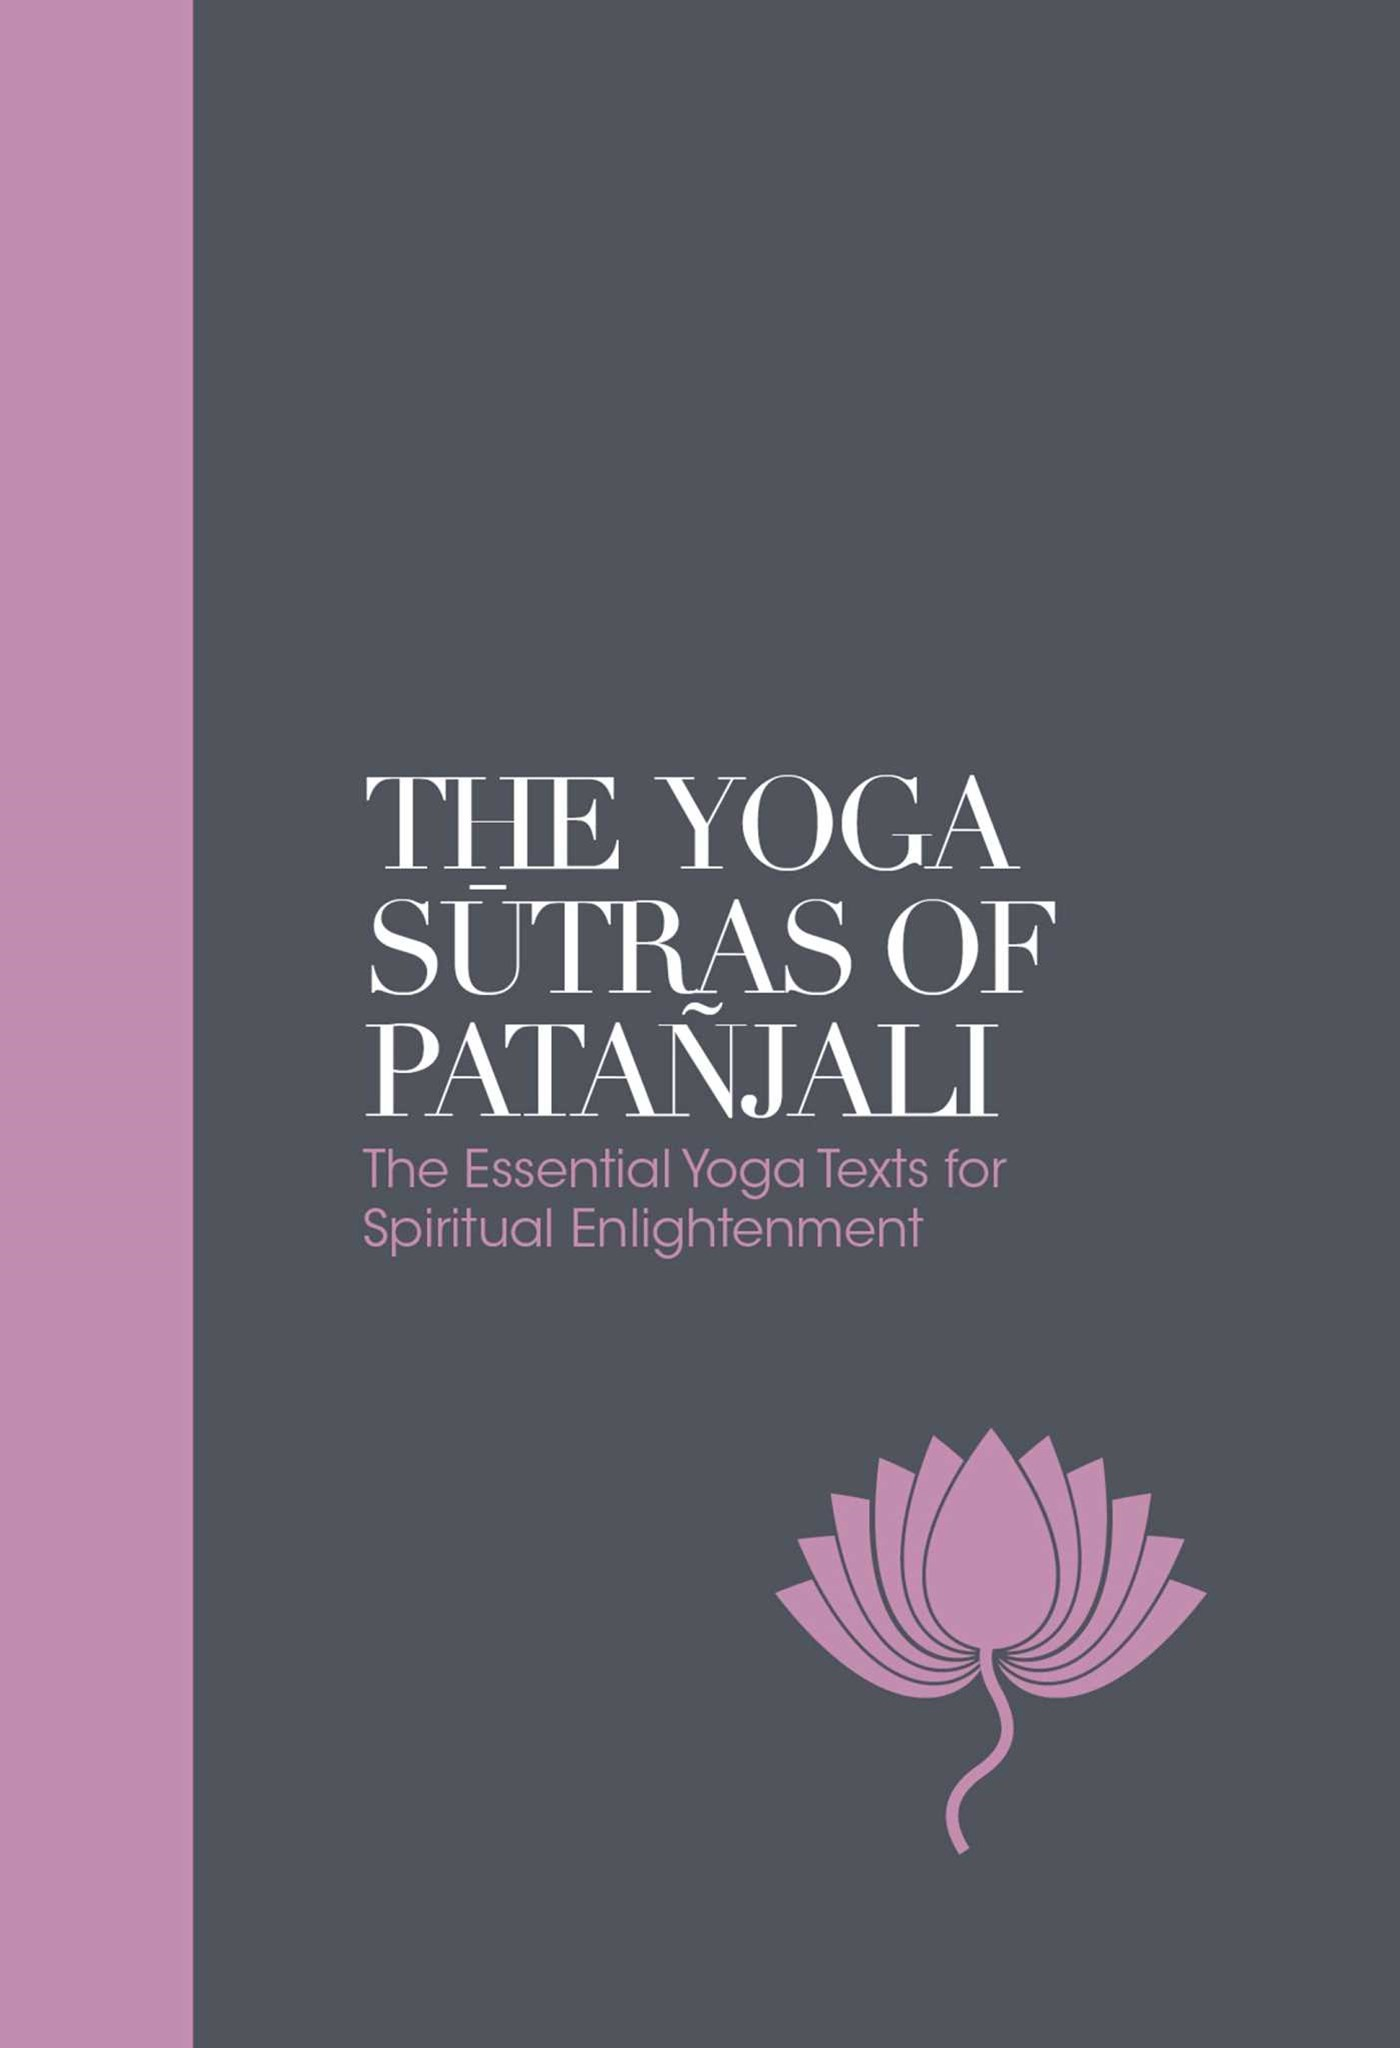 Sacred Texts - The Yoga Sutras of Patanjali